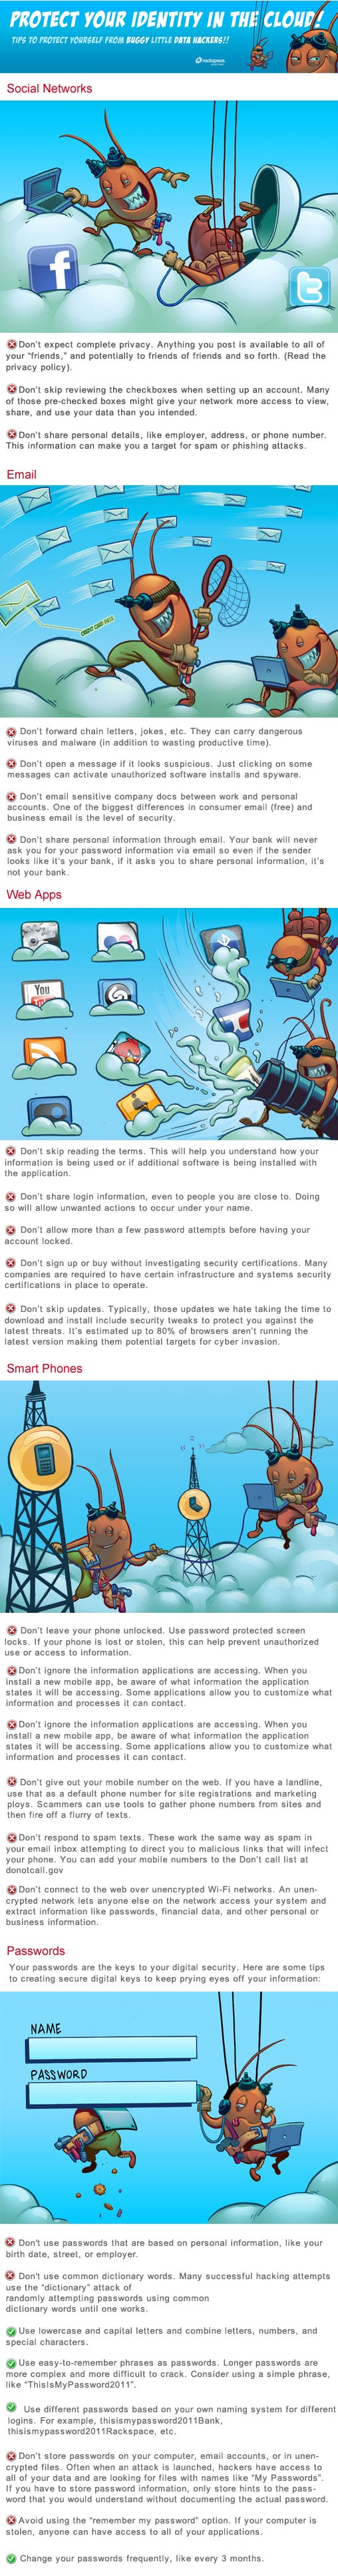 cloud-security-measure-tips-infographic